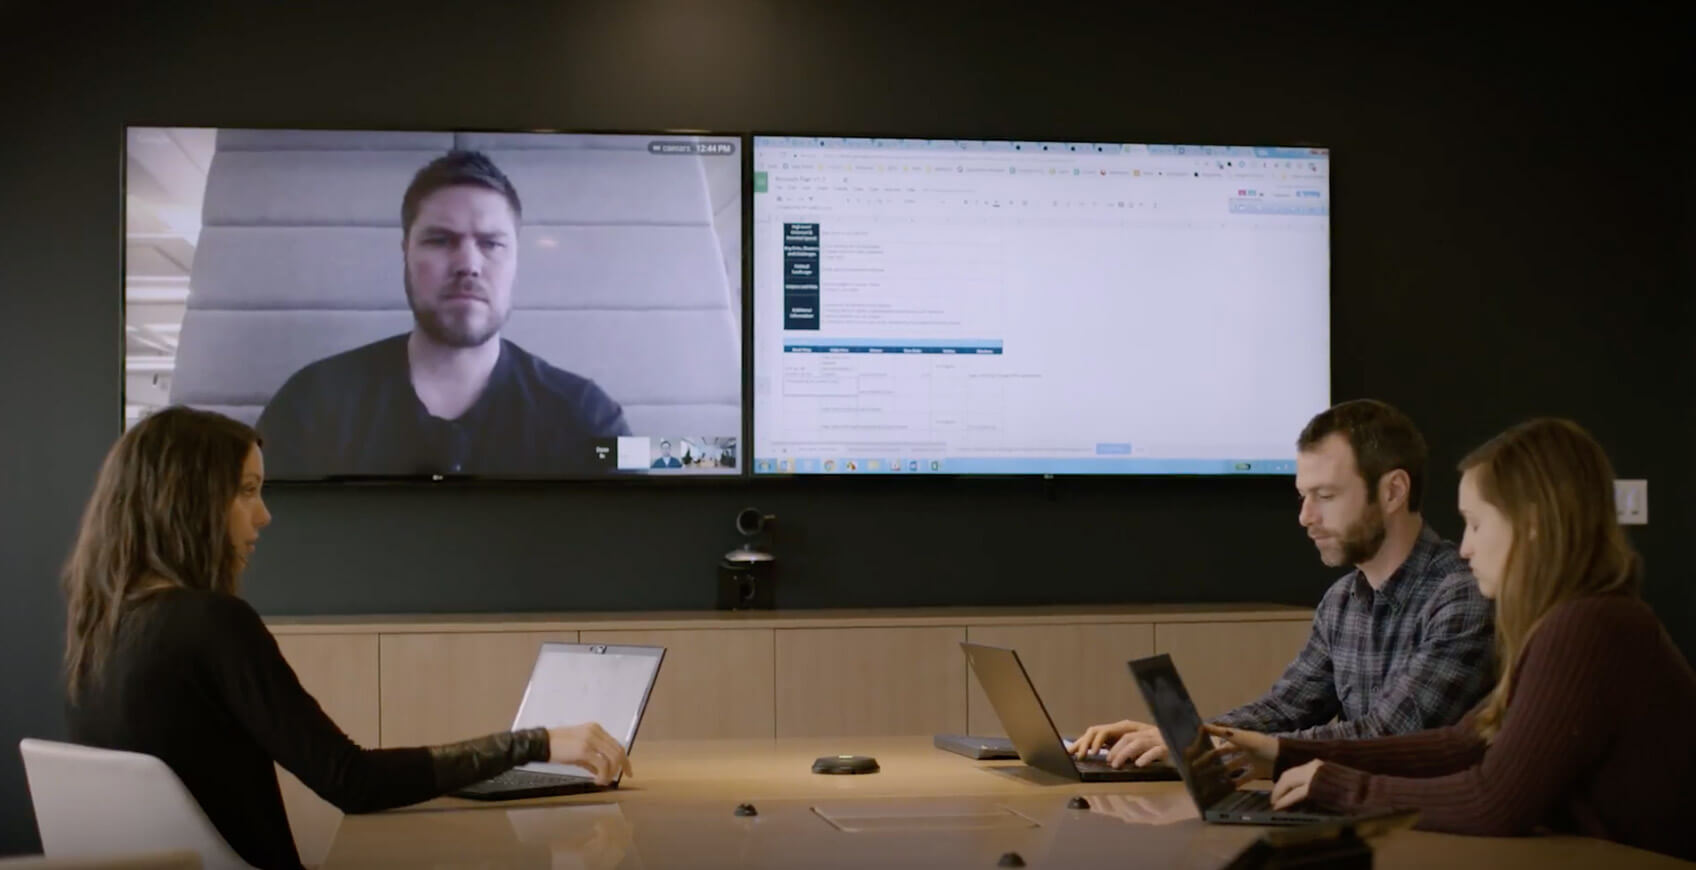 Quantcast uses Logitech solutions to make video conference